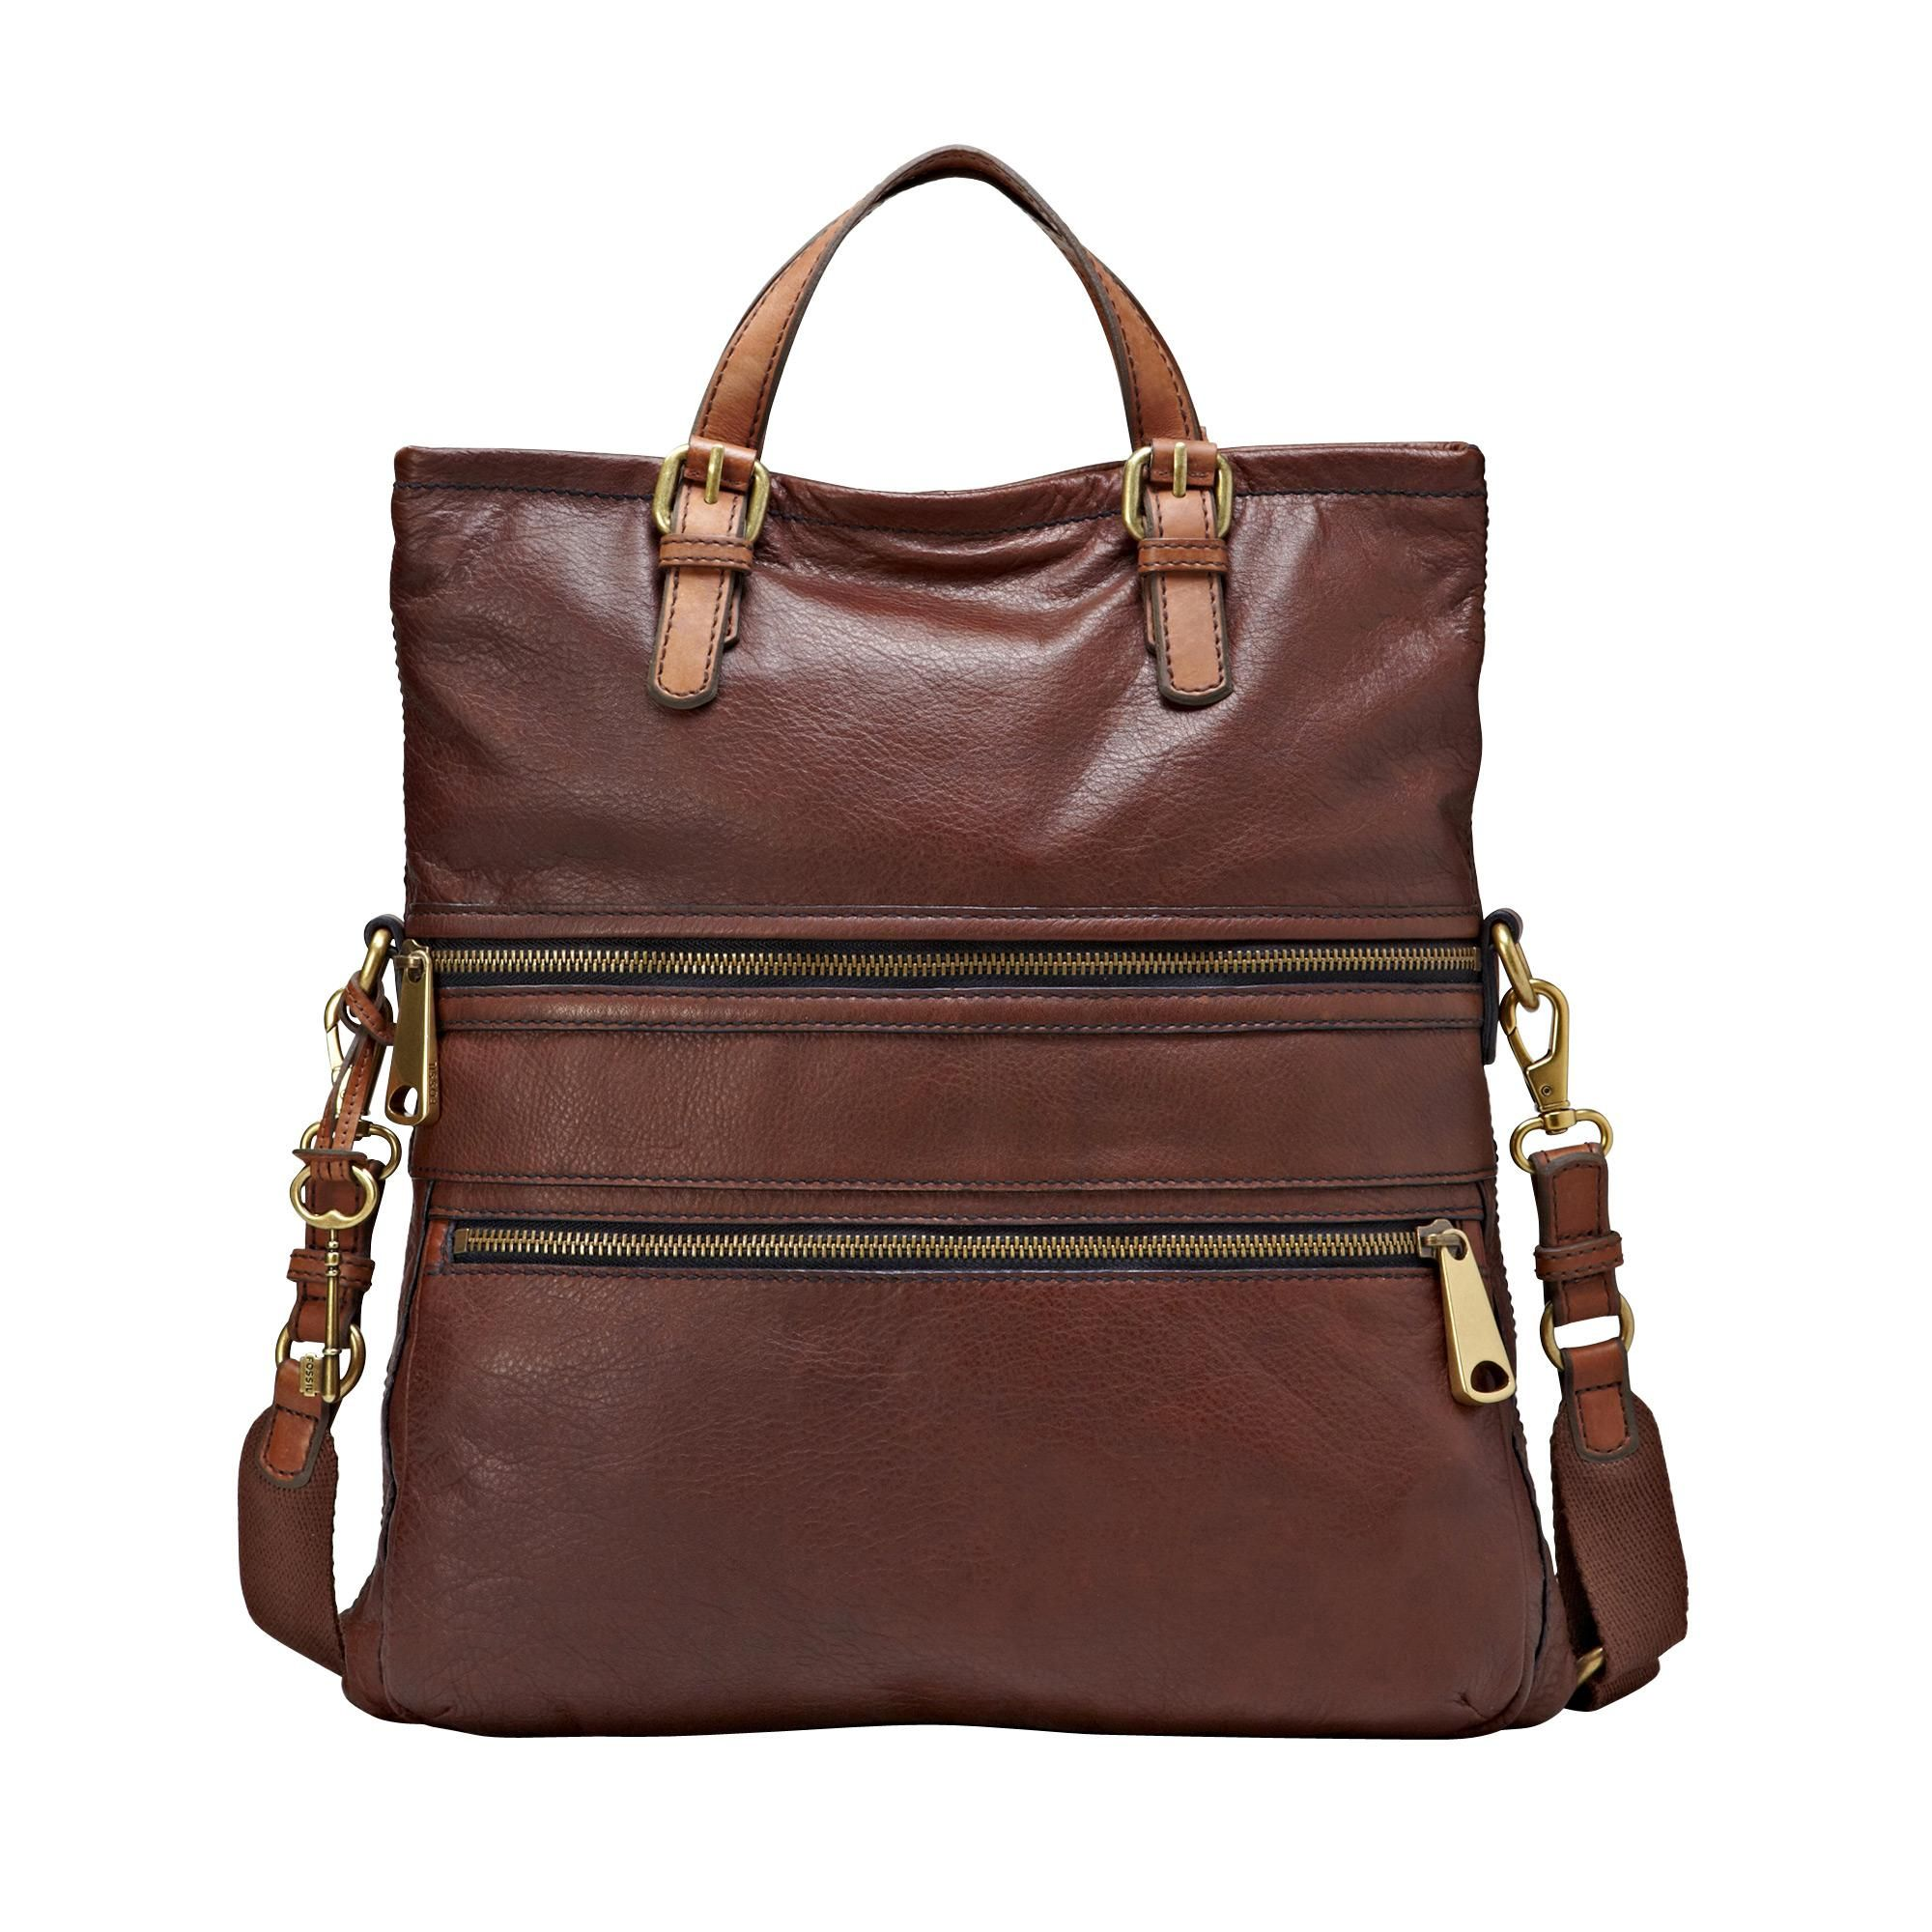 Fossil Tote Bag - ZB5258206